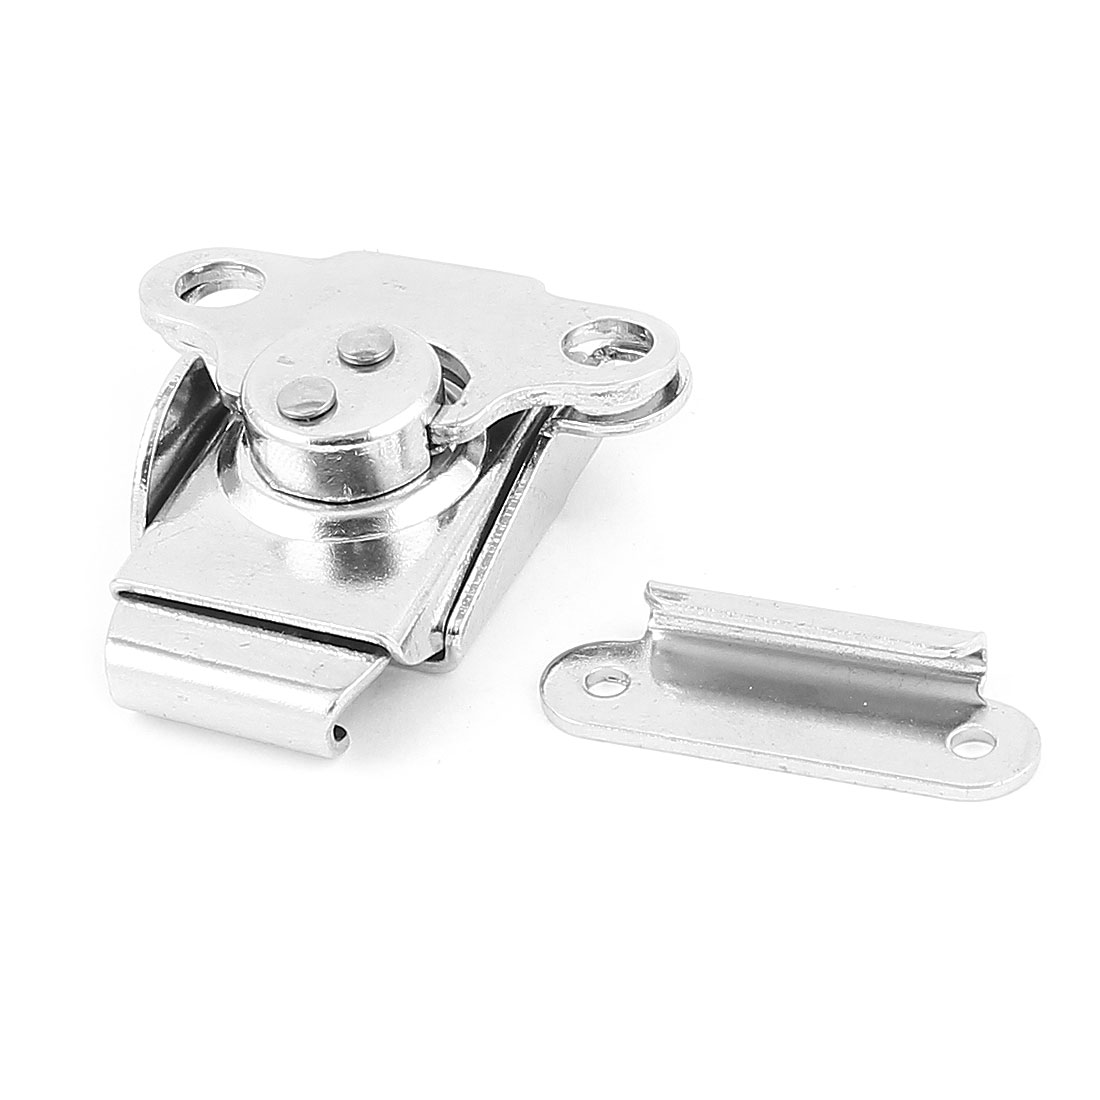 Boxes Case Toggle Clamp Locking Latch Silver Tone 46mm x 44mm x 15mm